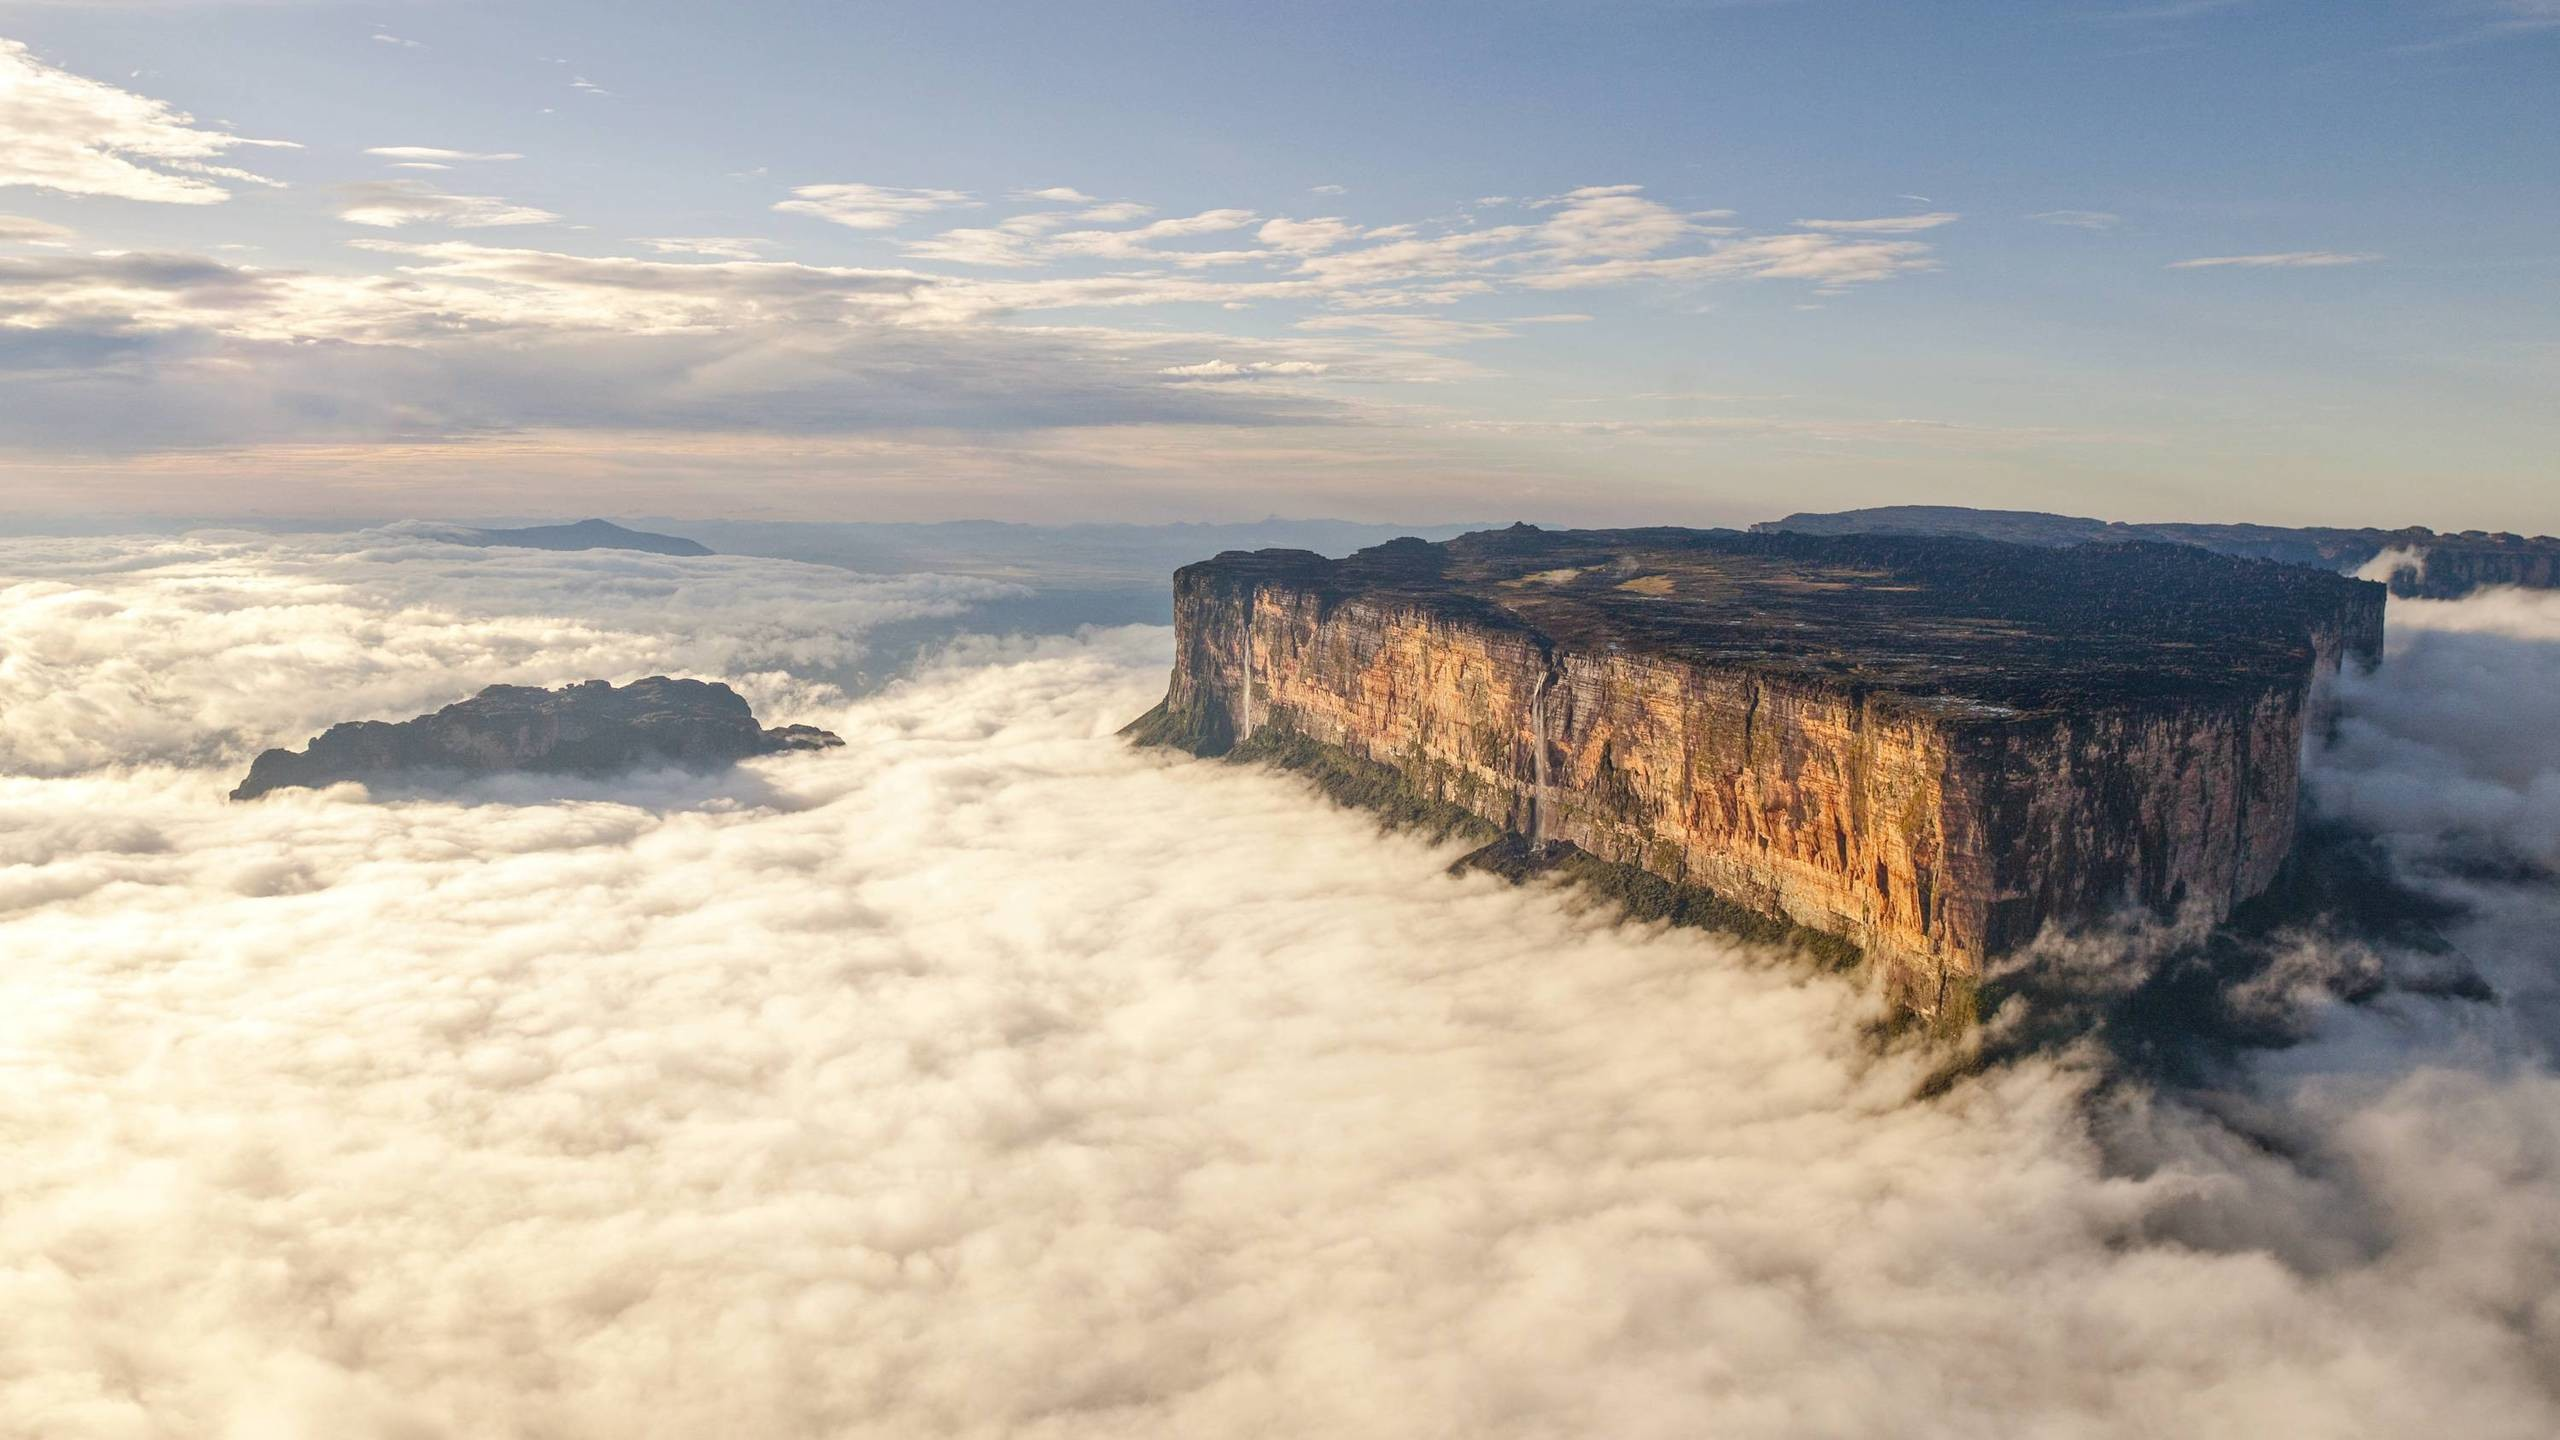 Res: 2560x1440, BOTPOST[BOTPOST] An Island in the Clouds, Mount Roraima, Venezuela ...